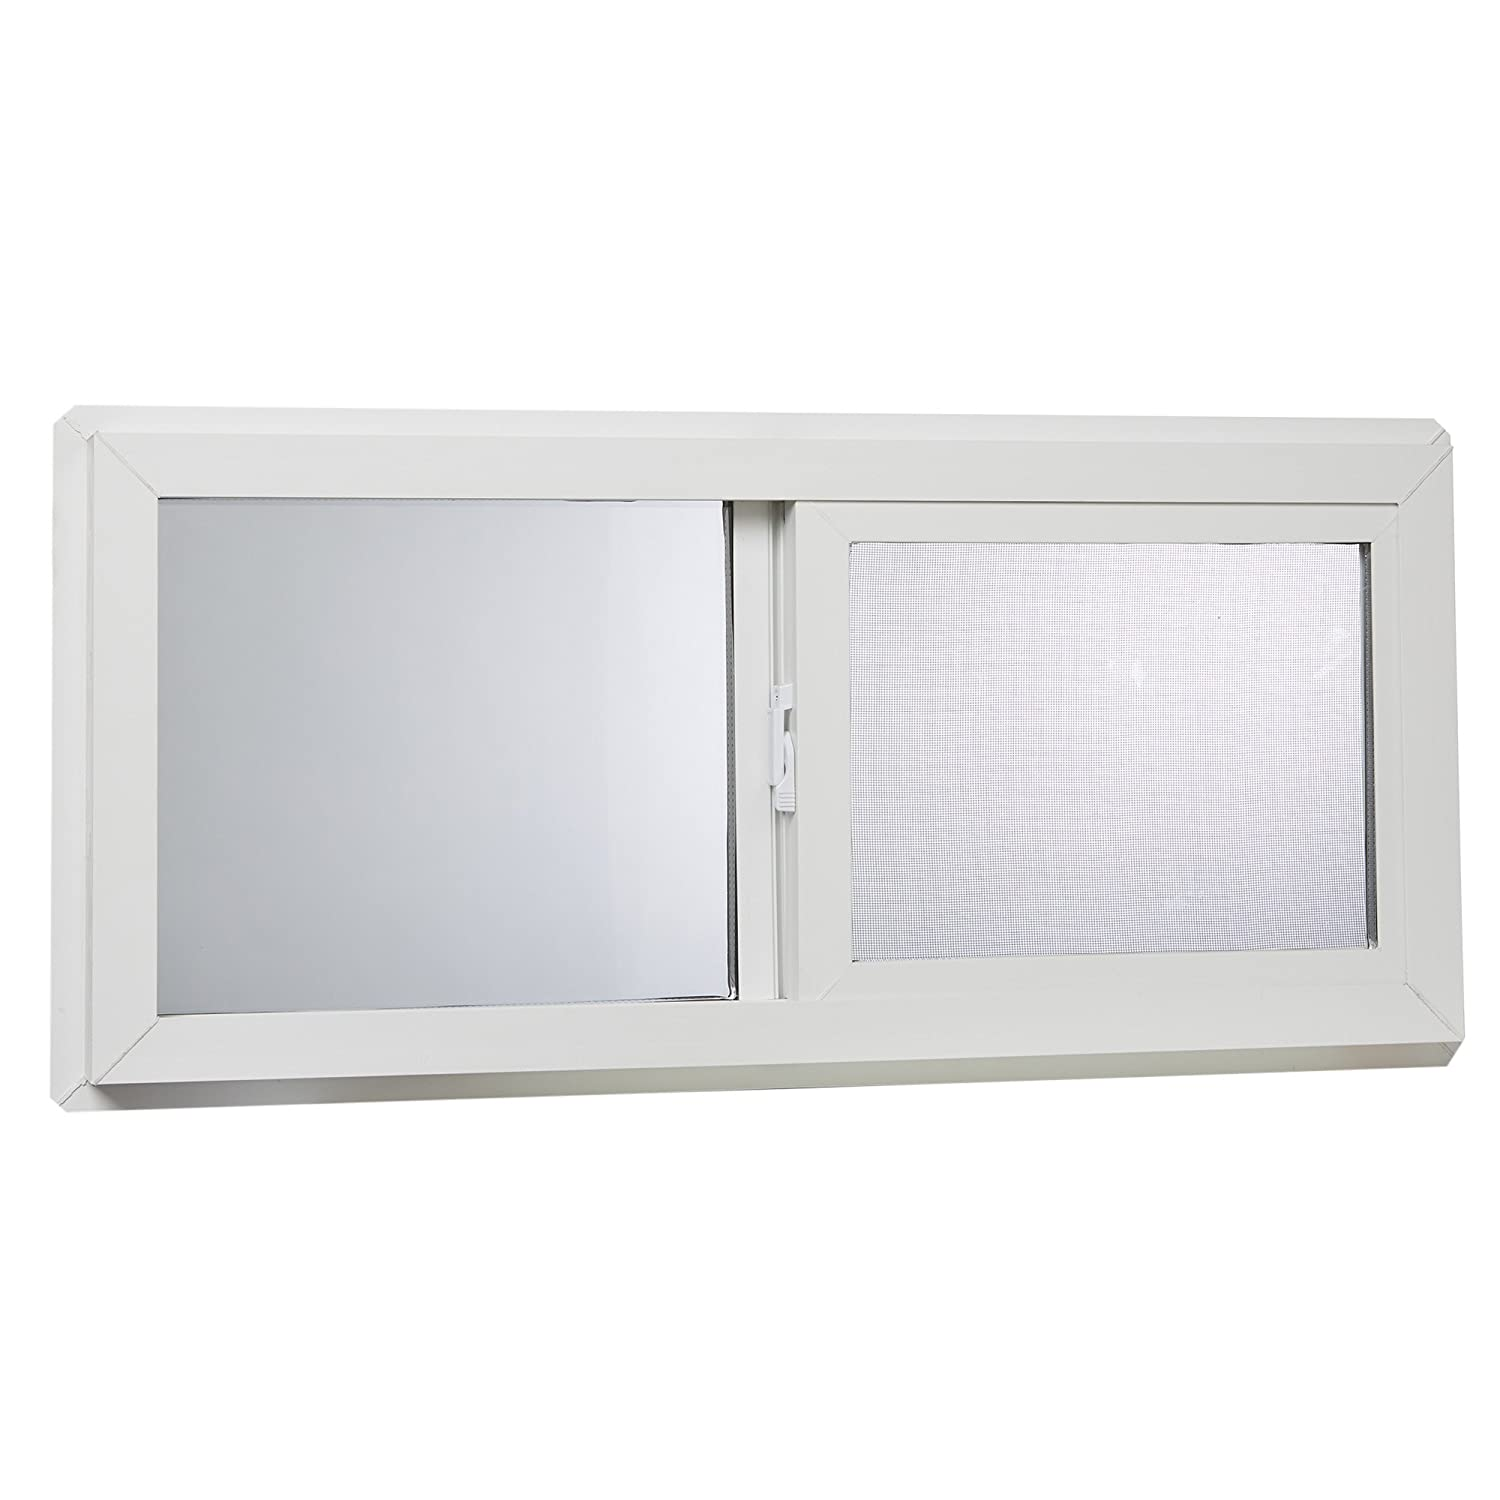 "Park Ridge VBSI3214PR Vinyl Basement Slider Window, 32"" x 14"", White"